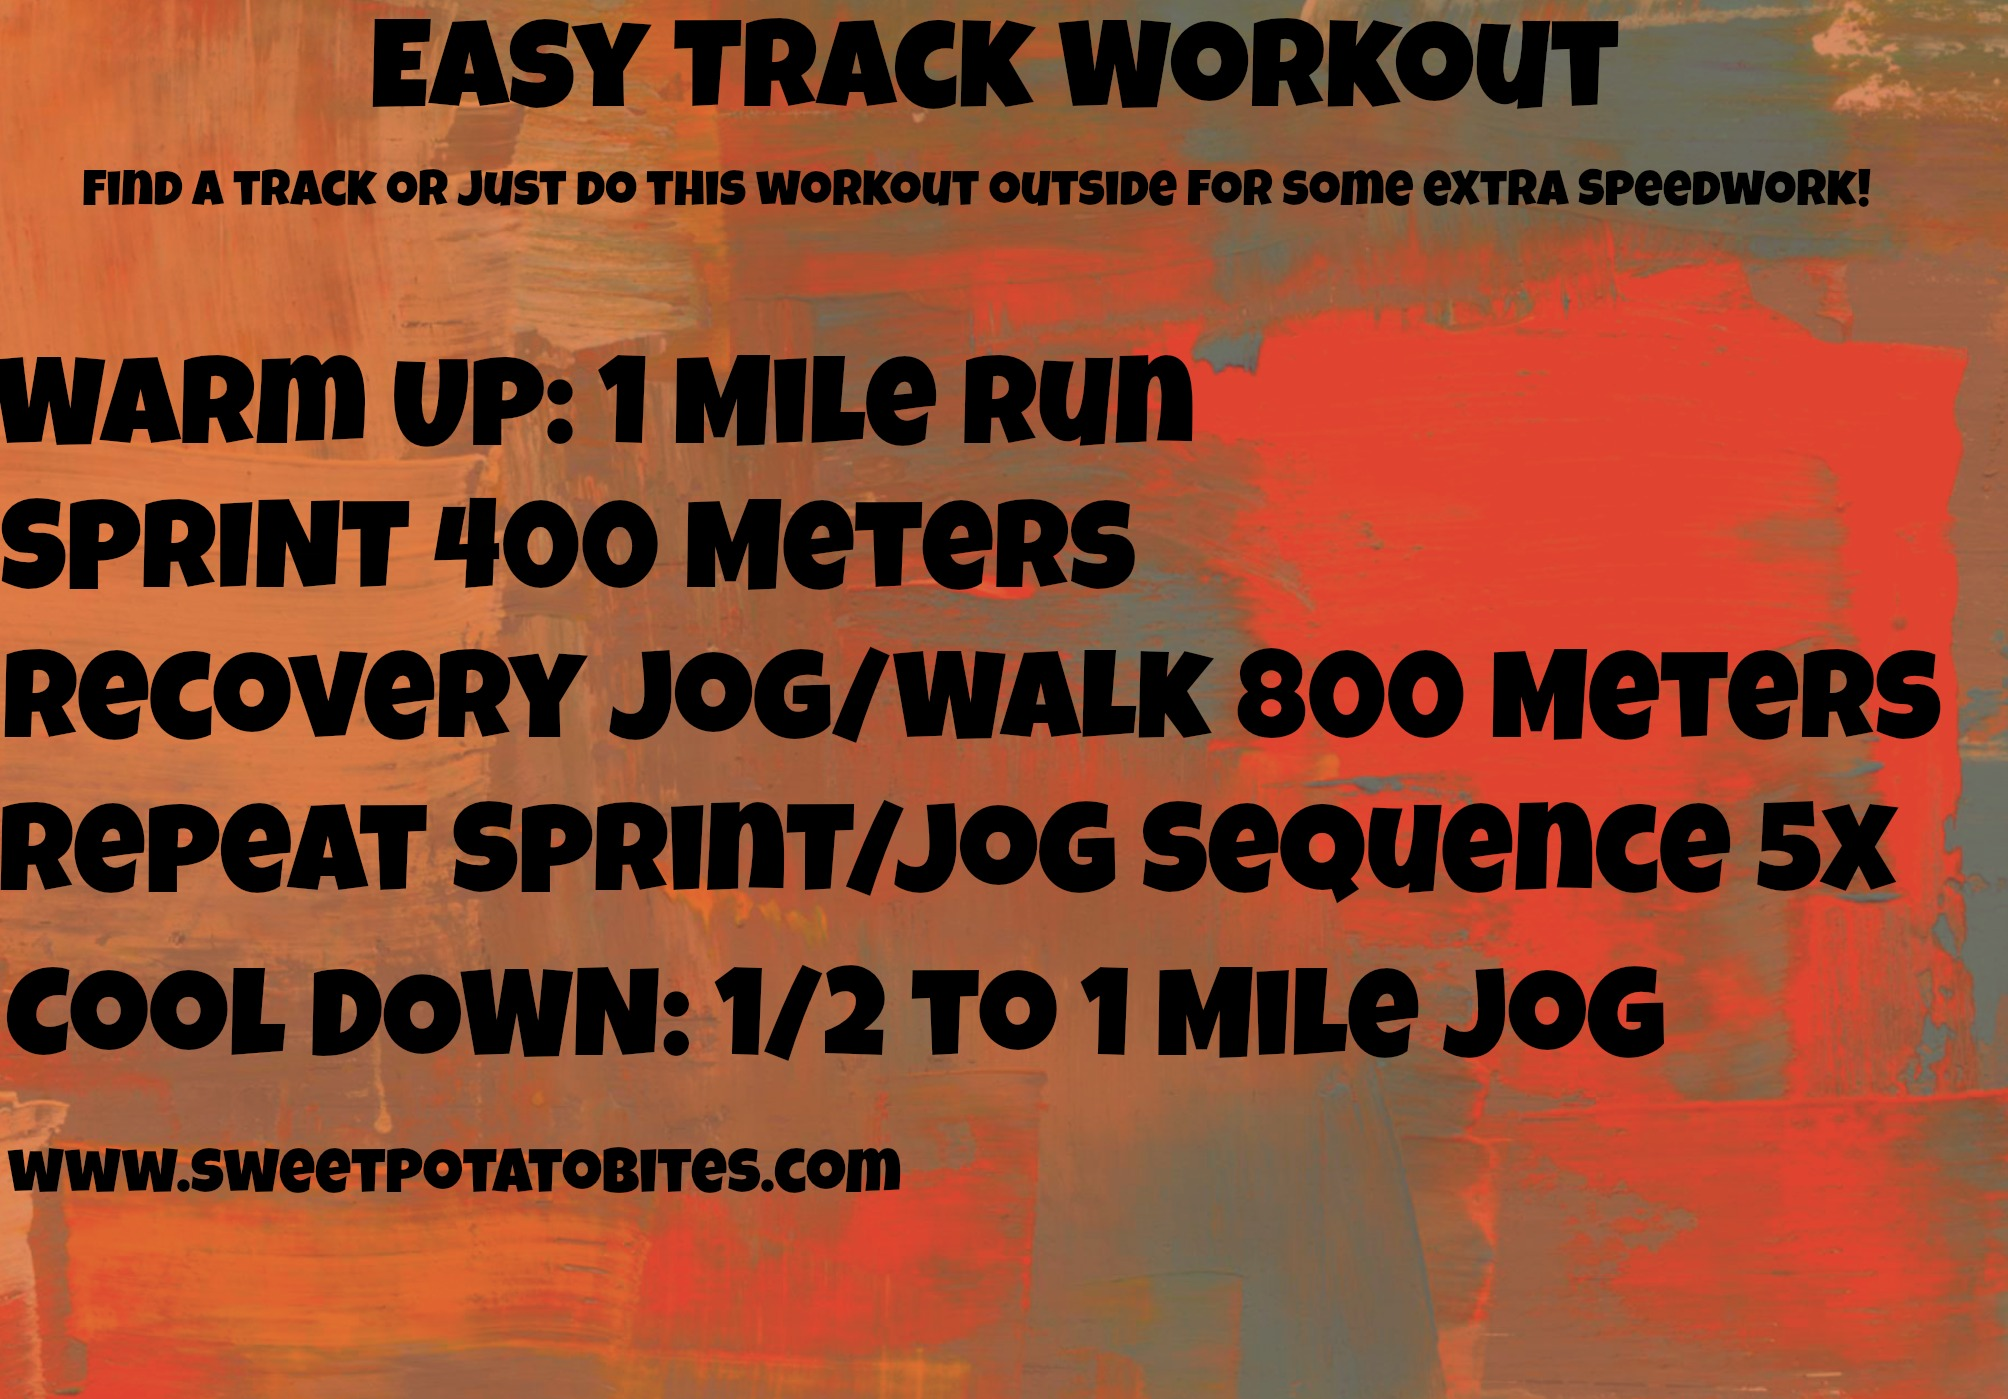 Easy Track Workout